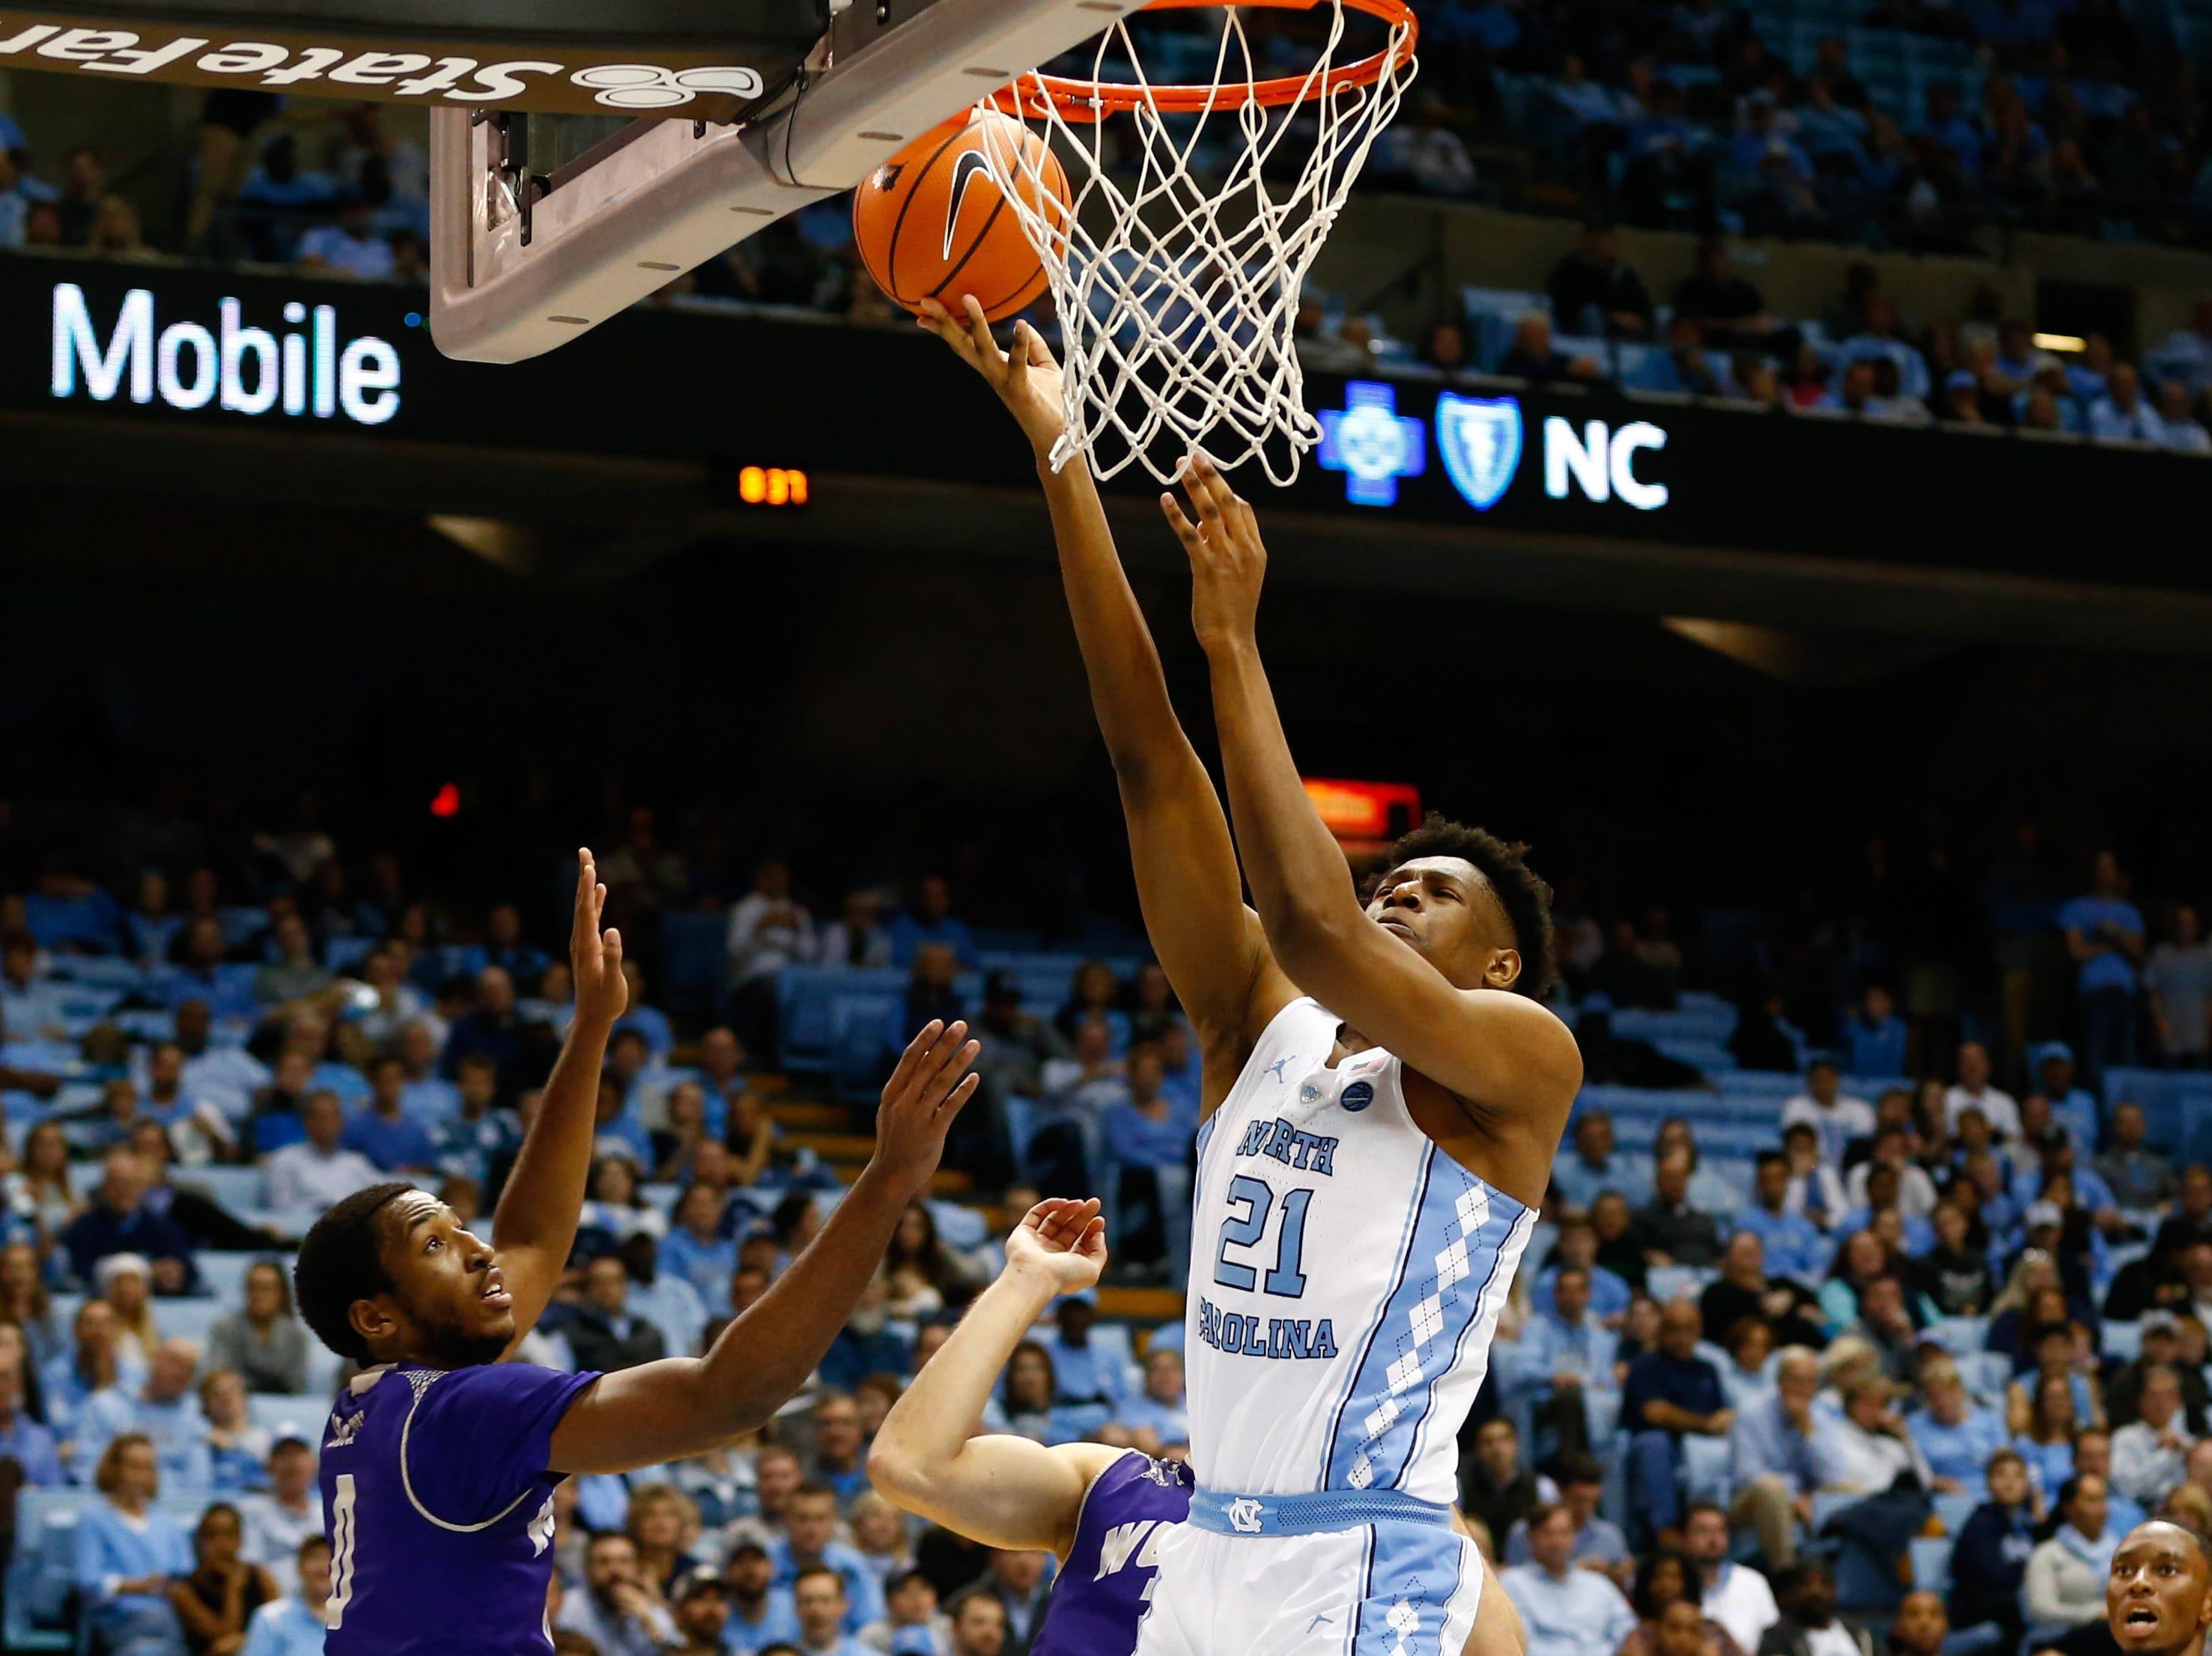 Dec 6, 2017; Chapel Hill, NC, USA; North Carolina Tar Heels forward Sterling Manley (21) shoots the ball against Western Carolina Catamounts guard Maurice Smith (0) in the first half at Dean E. Smith Center. Mandatory Credit: Jeremy Brevard-USA TODAY Sports